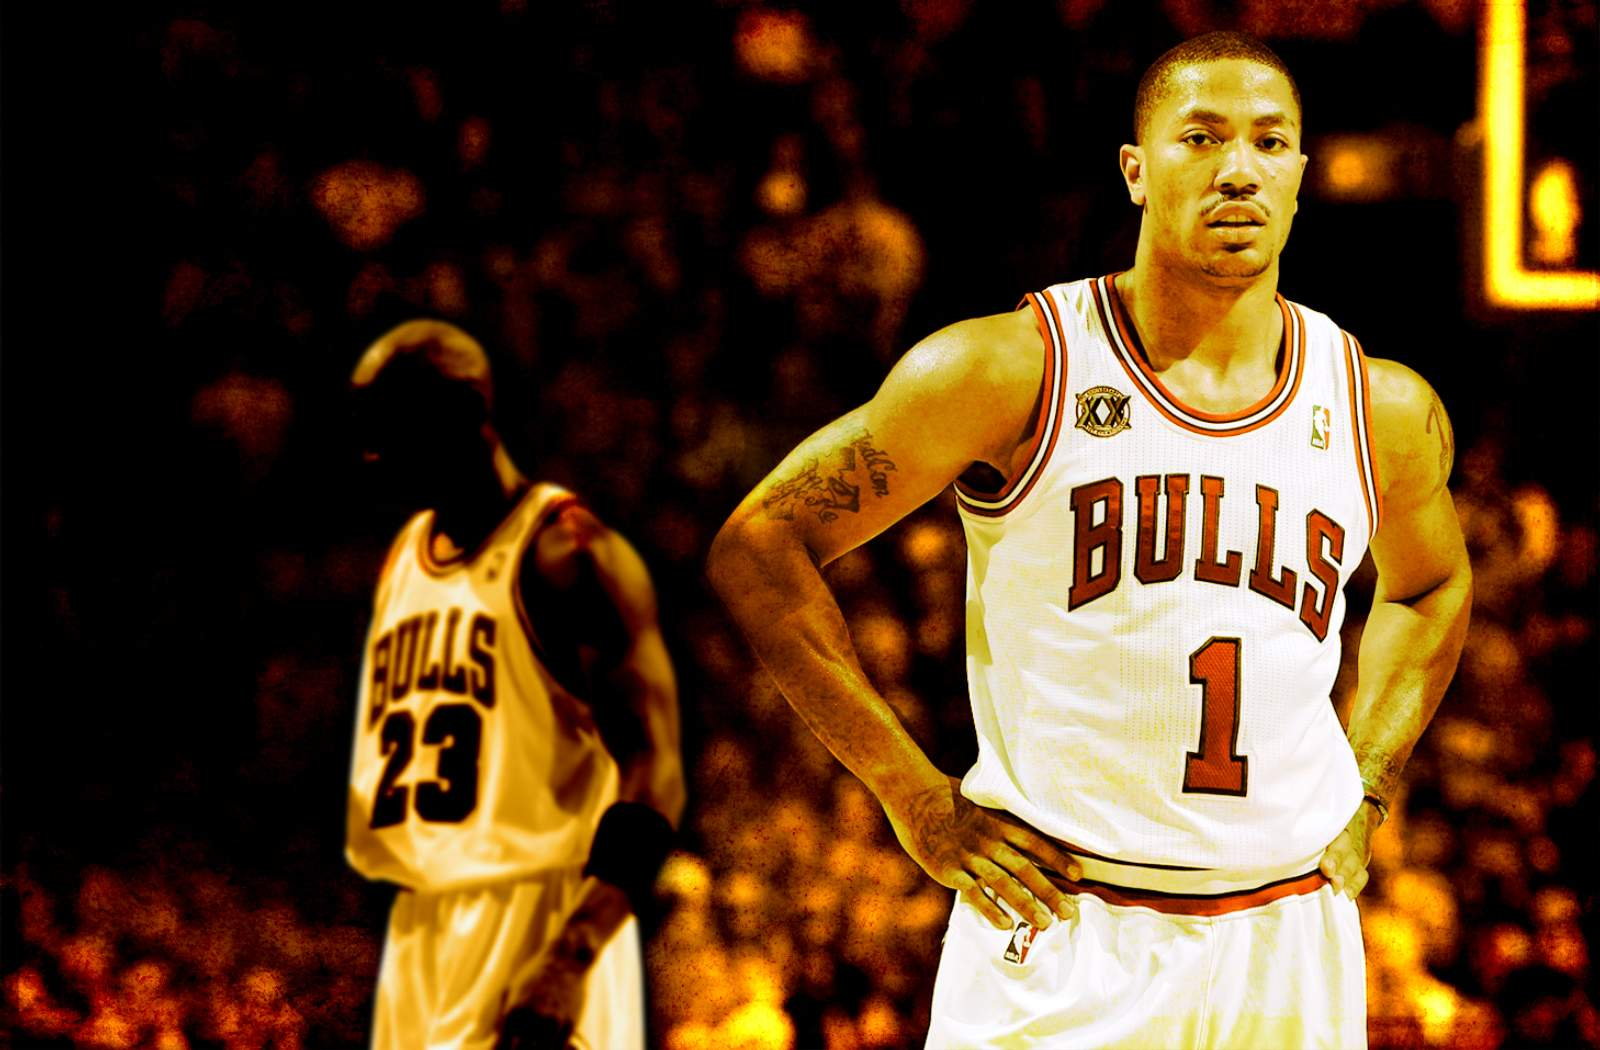 Derrick Rose And MJ Widescreen Wallpaper Basketball Wallpapers at 1600x1050